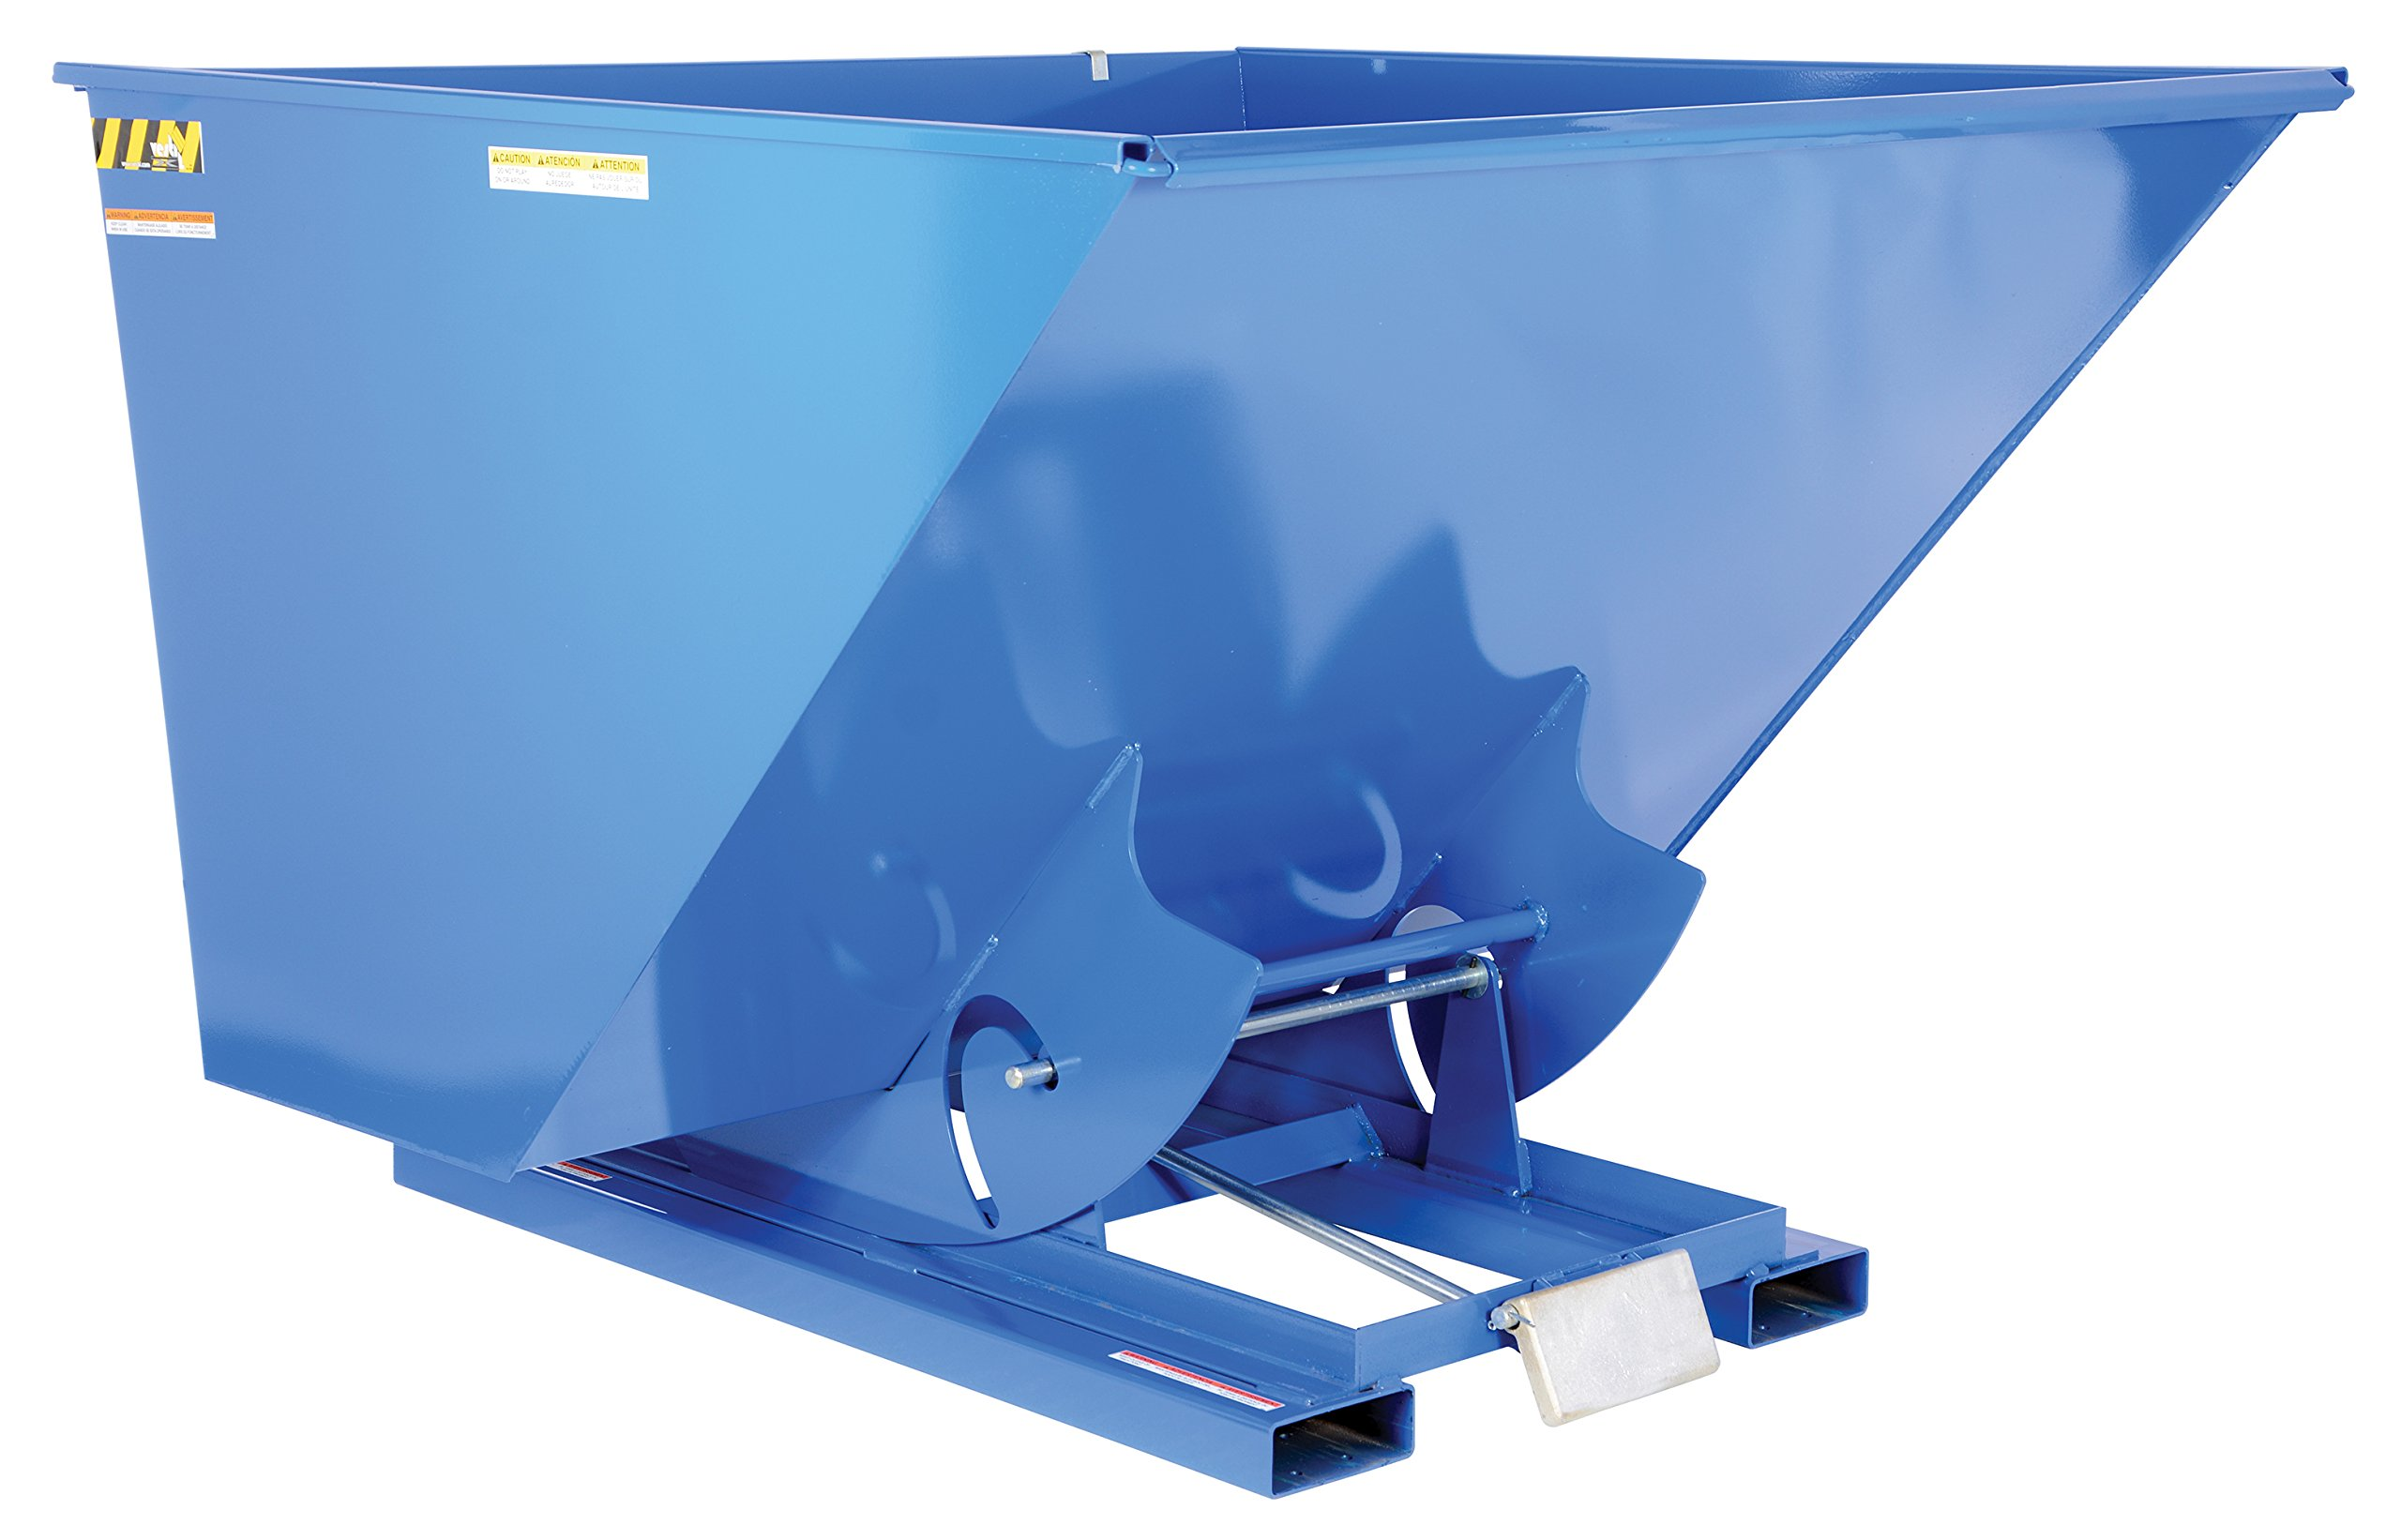 Vestil D-250-HD Heavy Duty Self-Dumping Hopper with Bumper Release, Steel, 6000 lb. Capacity, Overall L x W x H (in.) 68-3/8'' x 69-9/16'' x 51-3/4'', Blue by Vestil